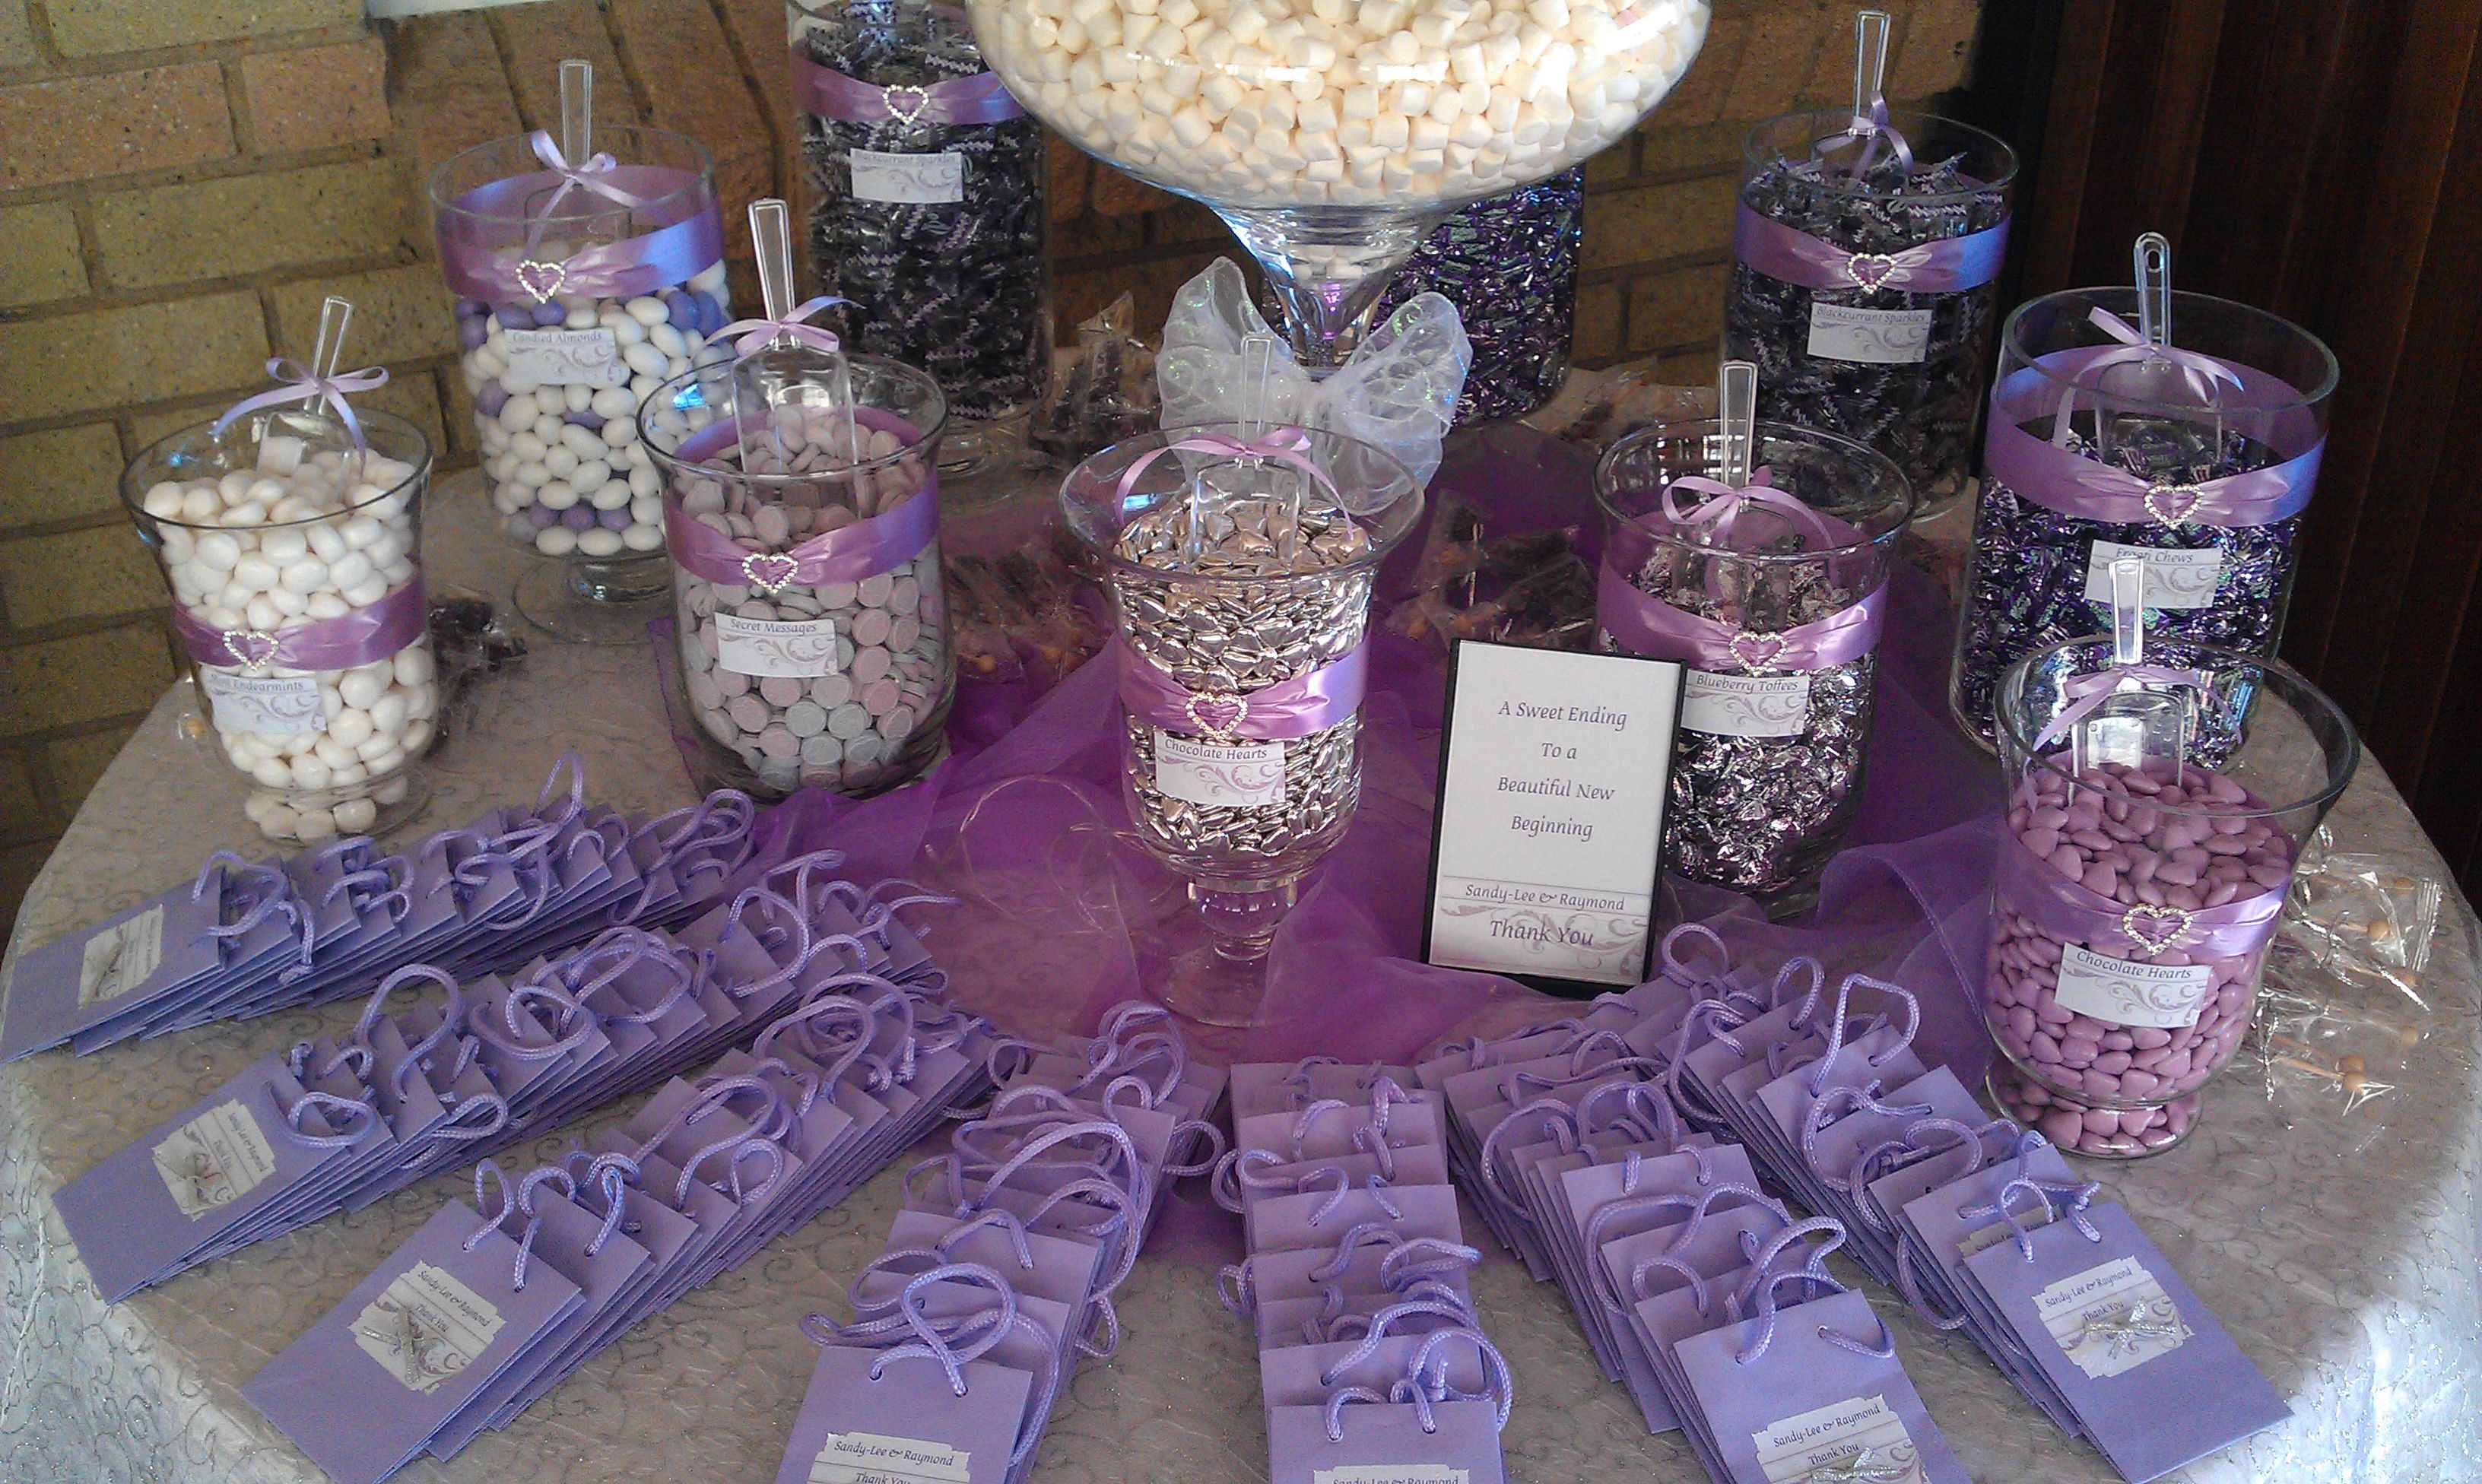 ... Candy Buffets | Pinterest | Wedding candy, Candy bars and Candy buffet